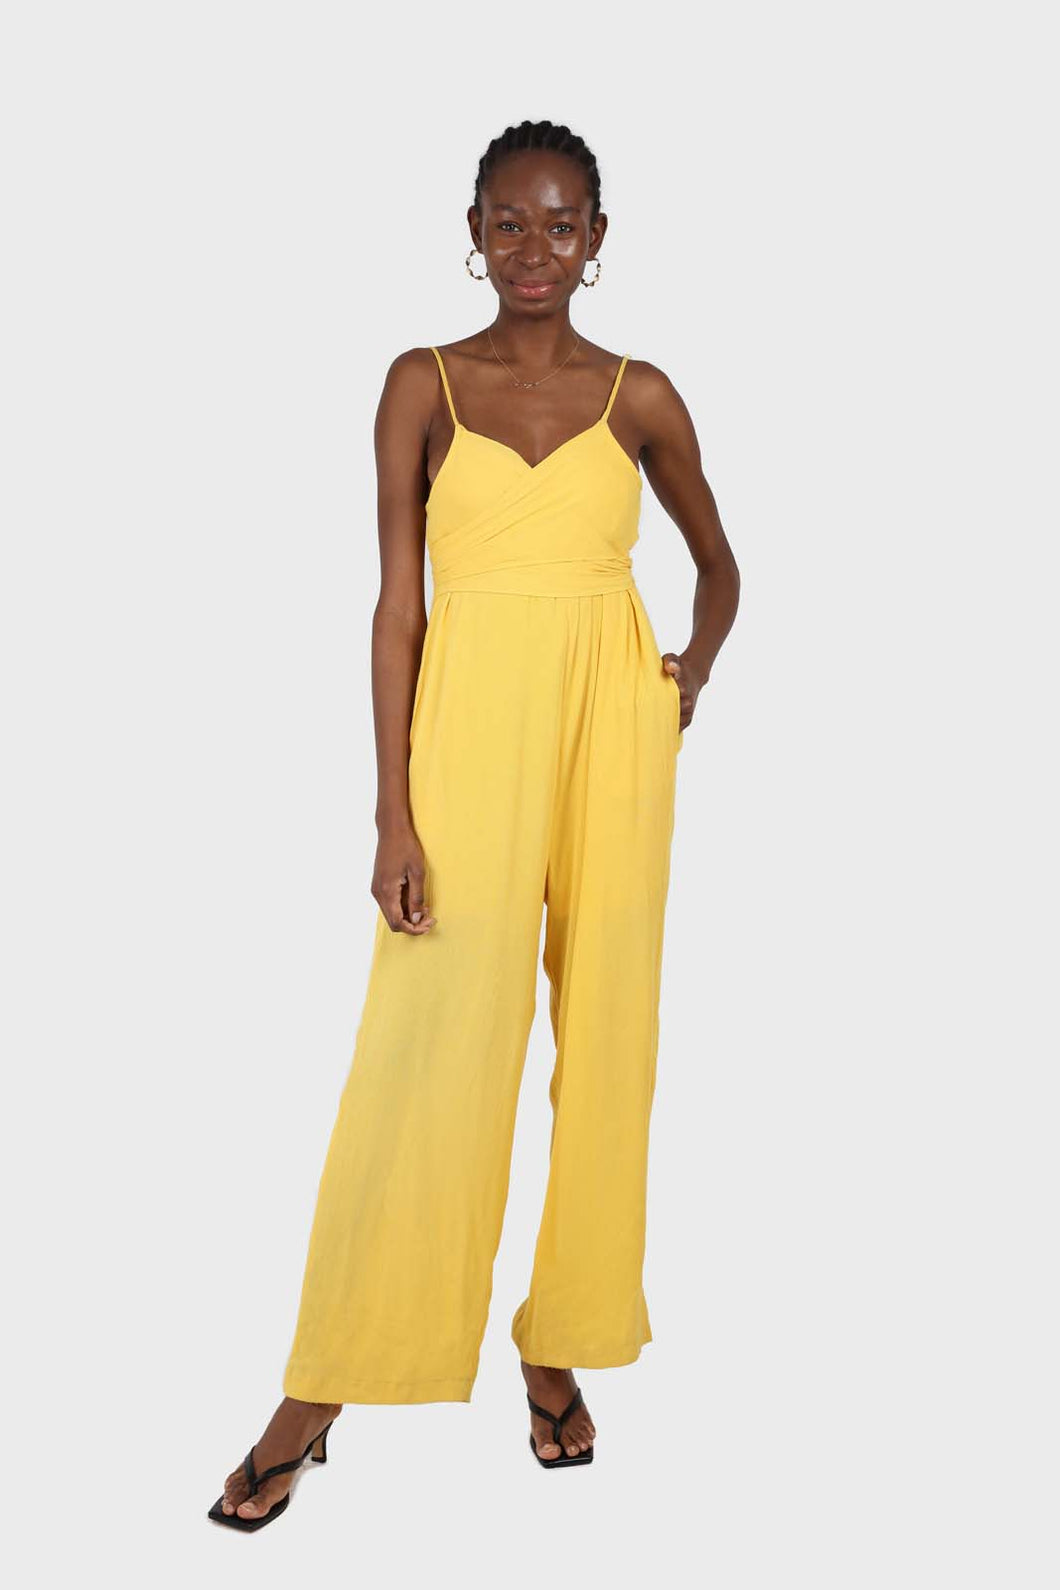 Yellow tie front thin strap jumpsuit sx